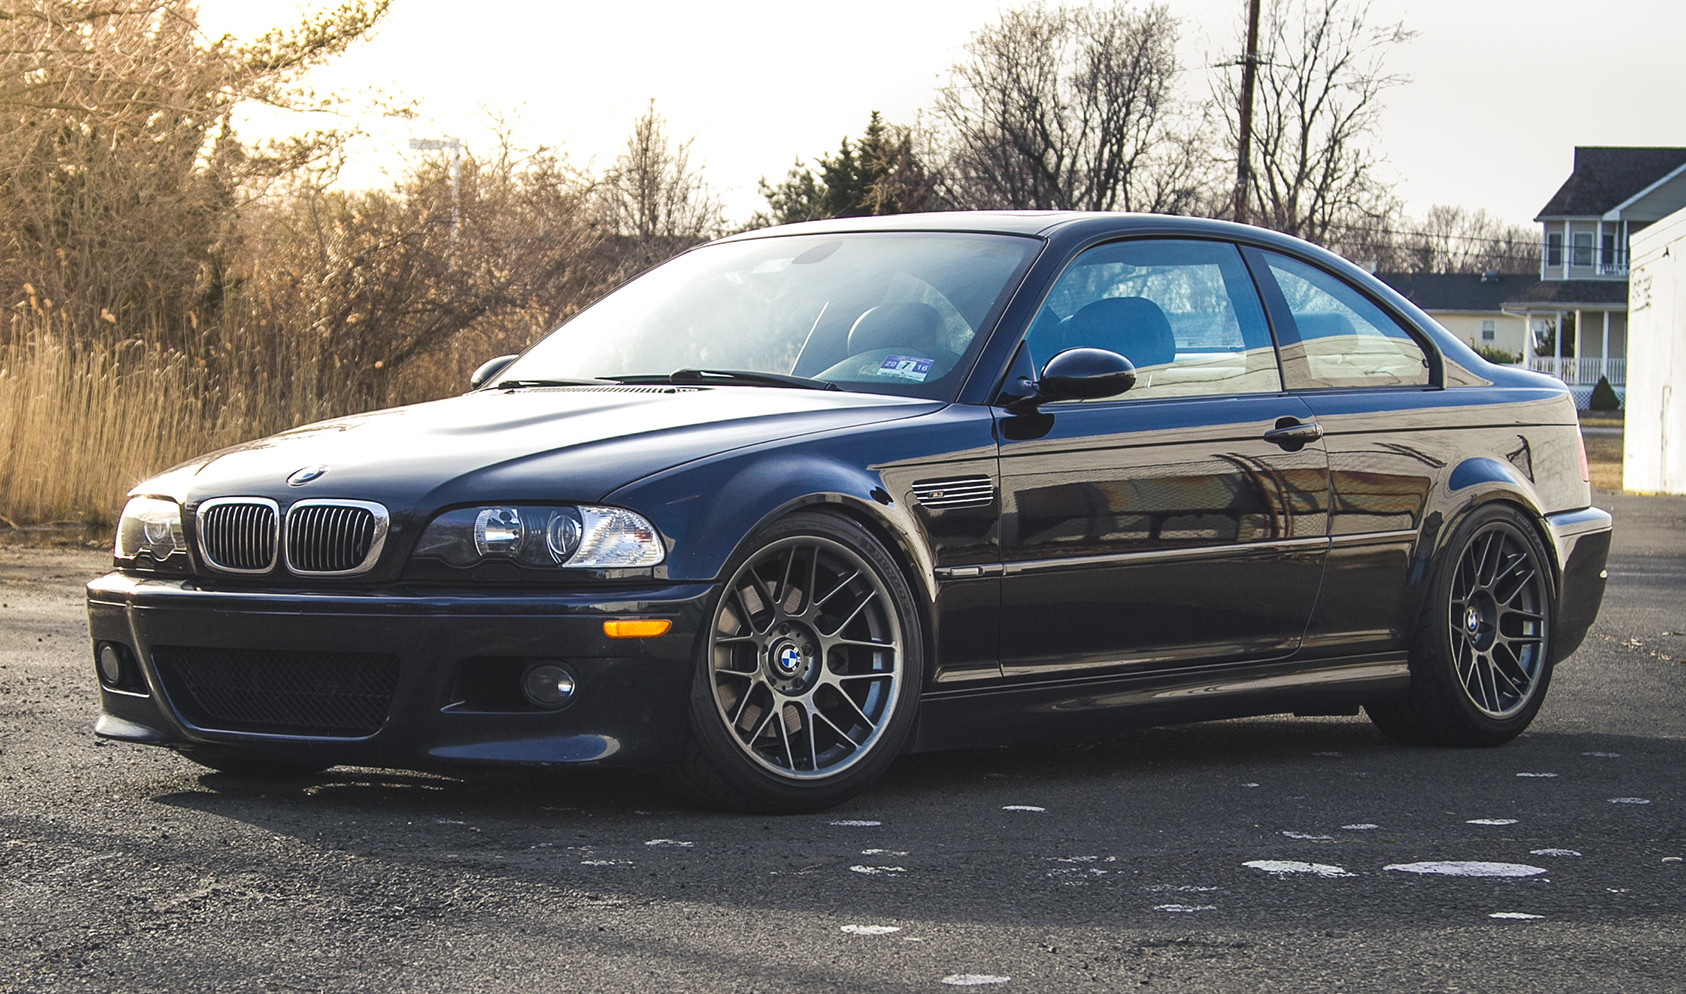 "E46 M3<br />Wheels: Anthracite ARC-8 18x9.5"" ET35 front, 18x10"" ET25 rear<br />Tires: Dunlop Direzza Starspec ZII 245/40-18 front, 275/35-18 rear"